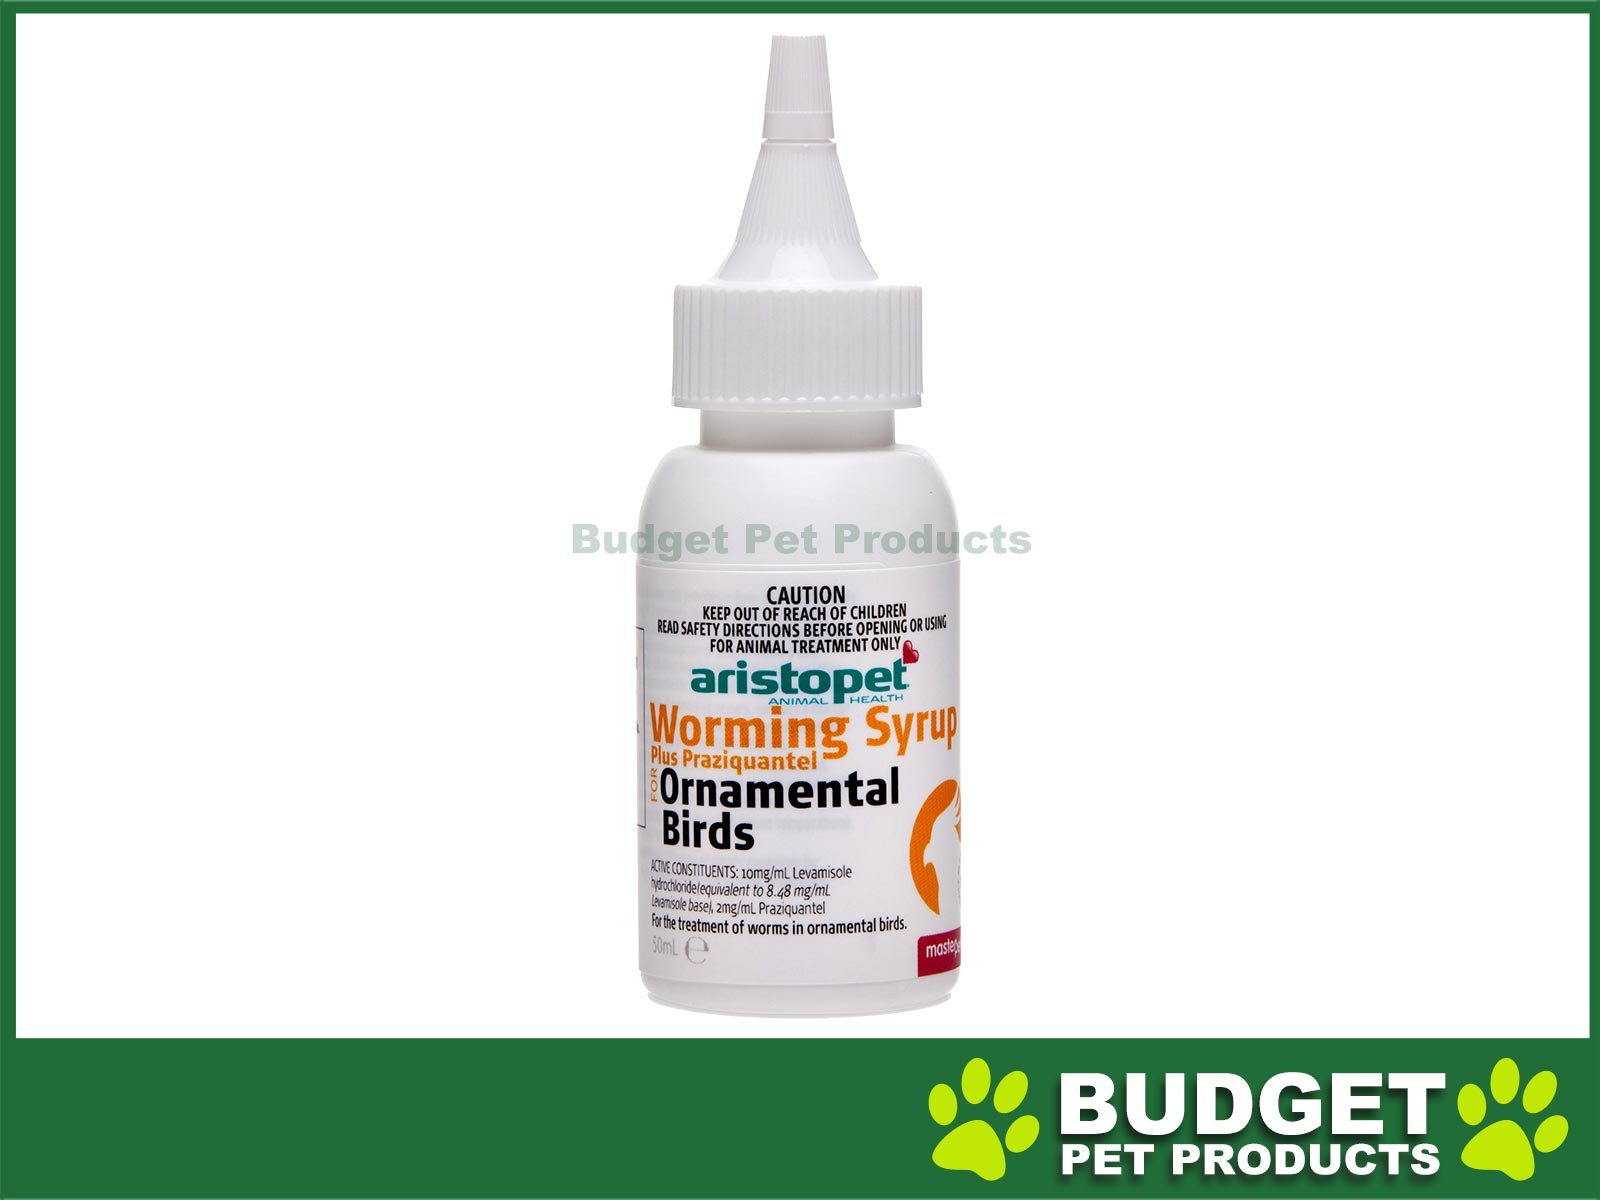 Other Bird Supplies Aristopet Worming Syrup Plus Praziquantel For Ornamental Birds 50ml